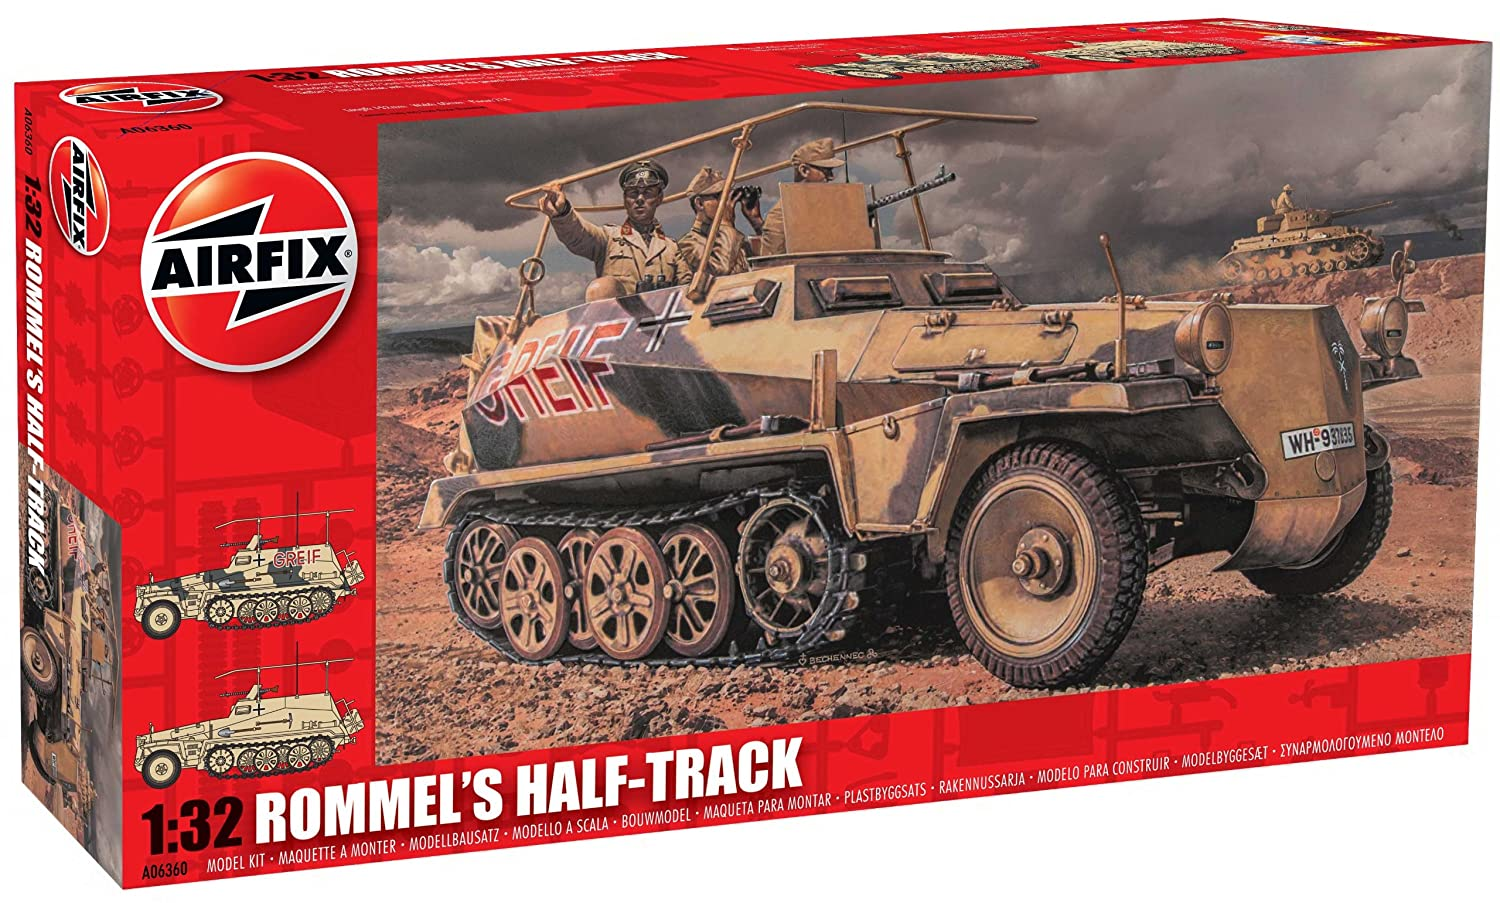 Airfix A06360 Rommels Half Track Set, 1:32 Scale